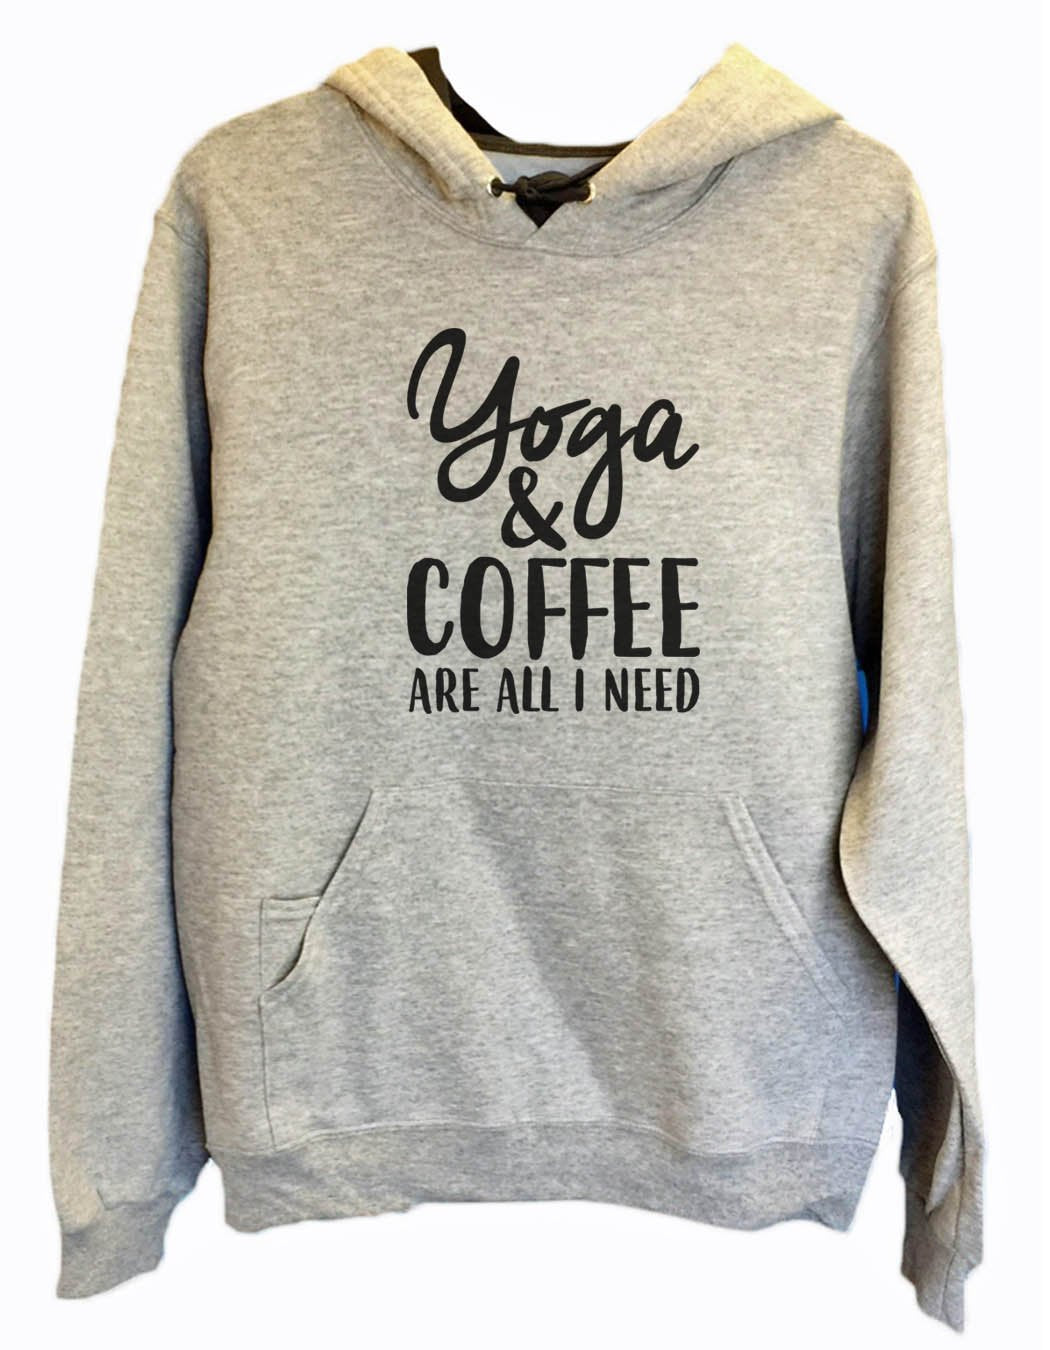 UNISEX HOODIE - Yoga & Coffee Are All I Need - FUNNY MENS AND WOMENS HOODED SWEATSHIRTS - 2174 Funny Shirt Small / Heather Grey